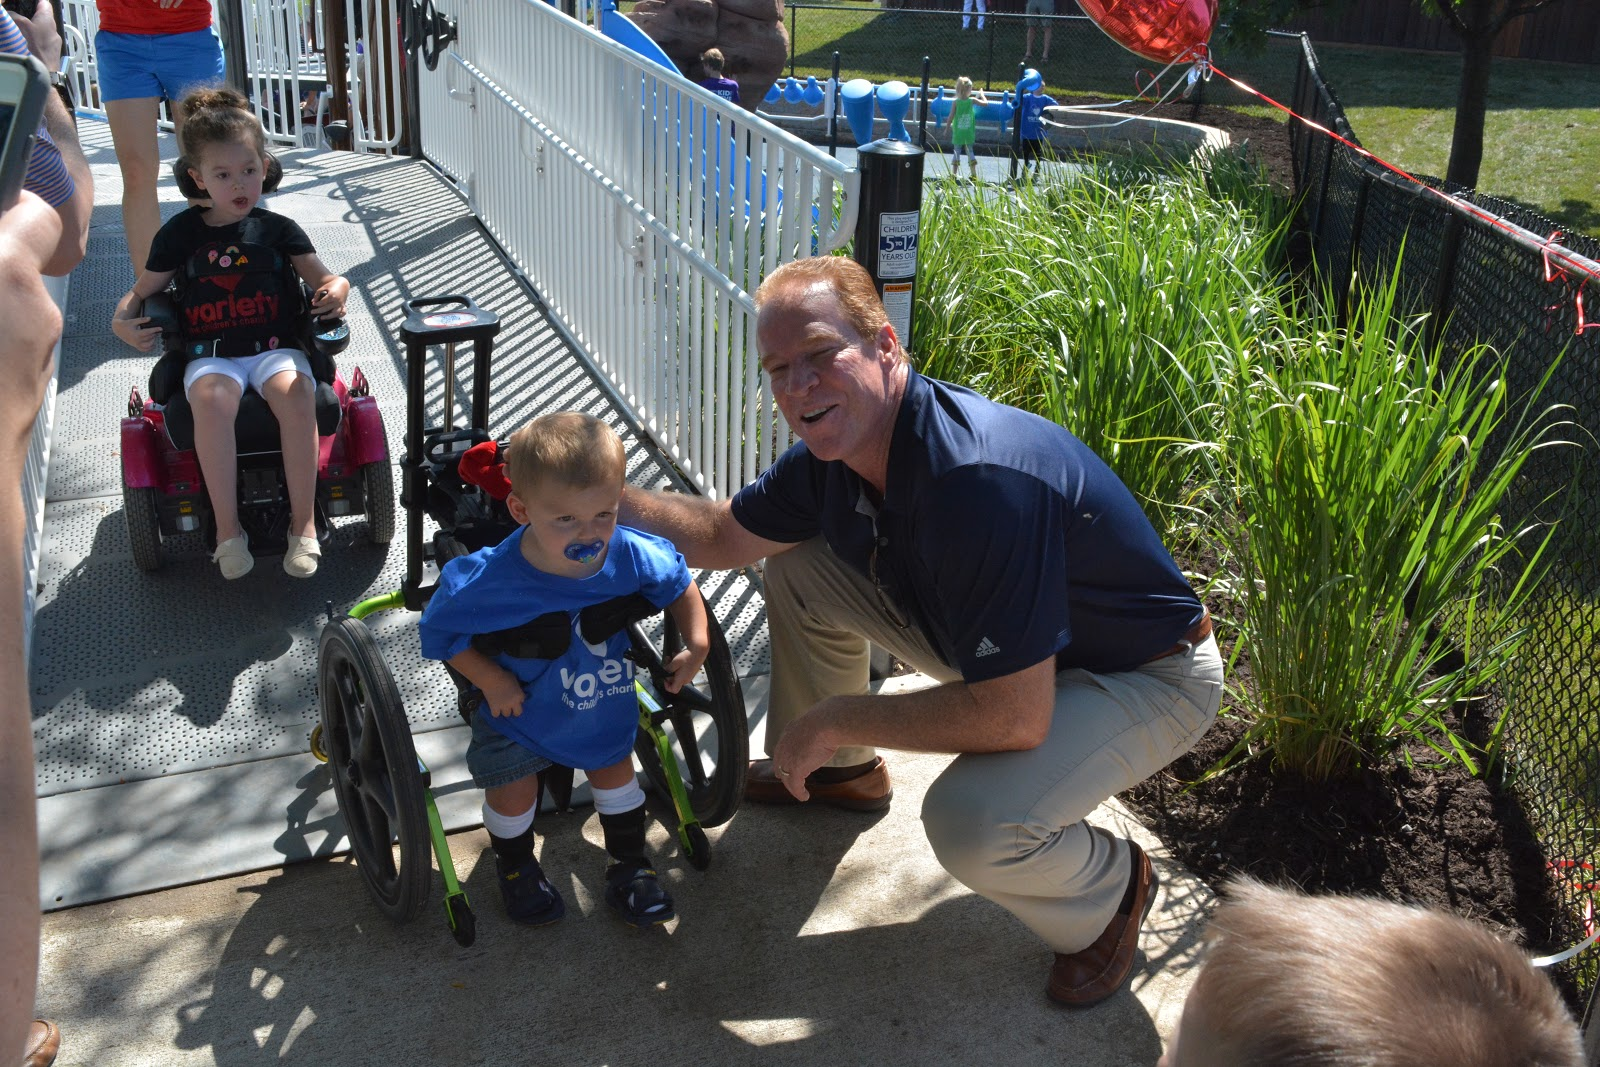 Rex Hudler poses with a small child at a Royals Charity event.